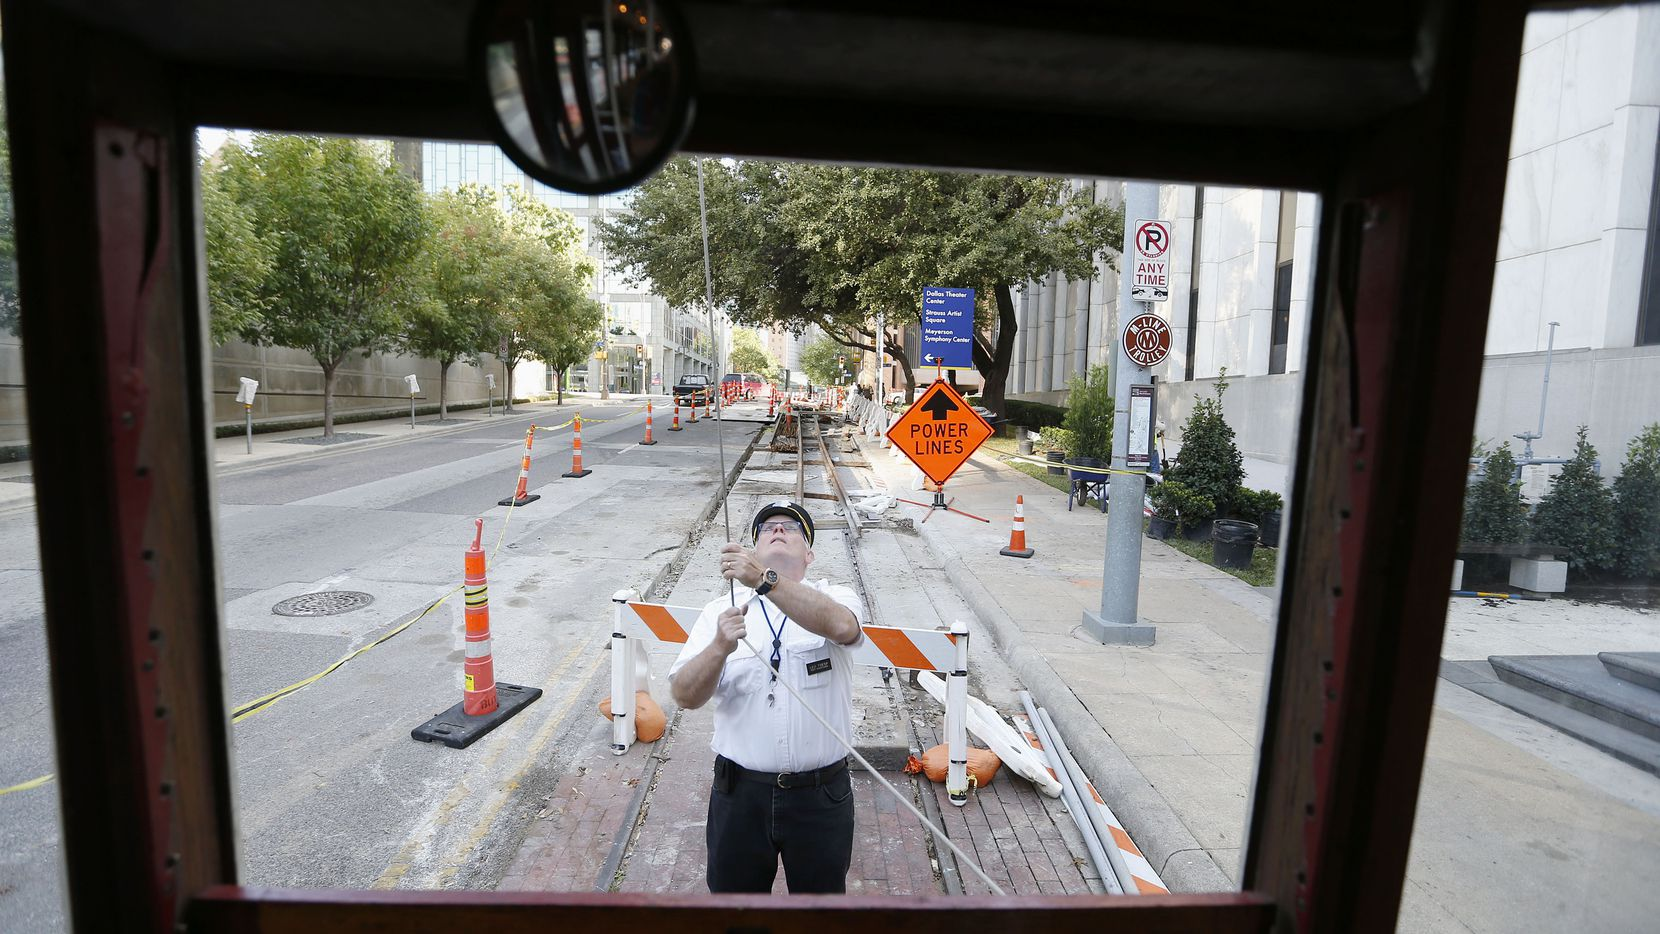 """M-Line Trolley motorman Leo Tresp switches the ends of the vehicle's cable at the route's southern terminus along St. Paul Street near Ross Avenue in Dallas Wednesday October 30, 2014. Currently under construction behind Tresp, an extension of the streetcar system will include parts of downtown Dallas, but operated by Dallas Area Rapid Transit (DART). On Wednesday, Tresp operated a vehicle built in 1913, called the """"Green Dragon."""" Tresp has been a motorman for eight years, but also serves as the chief training officer and assistant dispatcher for the McKinney Avenue Transit Authority. (Andy Jacobsohn/The Dallas Morning News) 11012014xNEWS"""